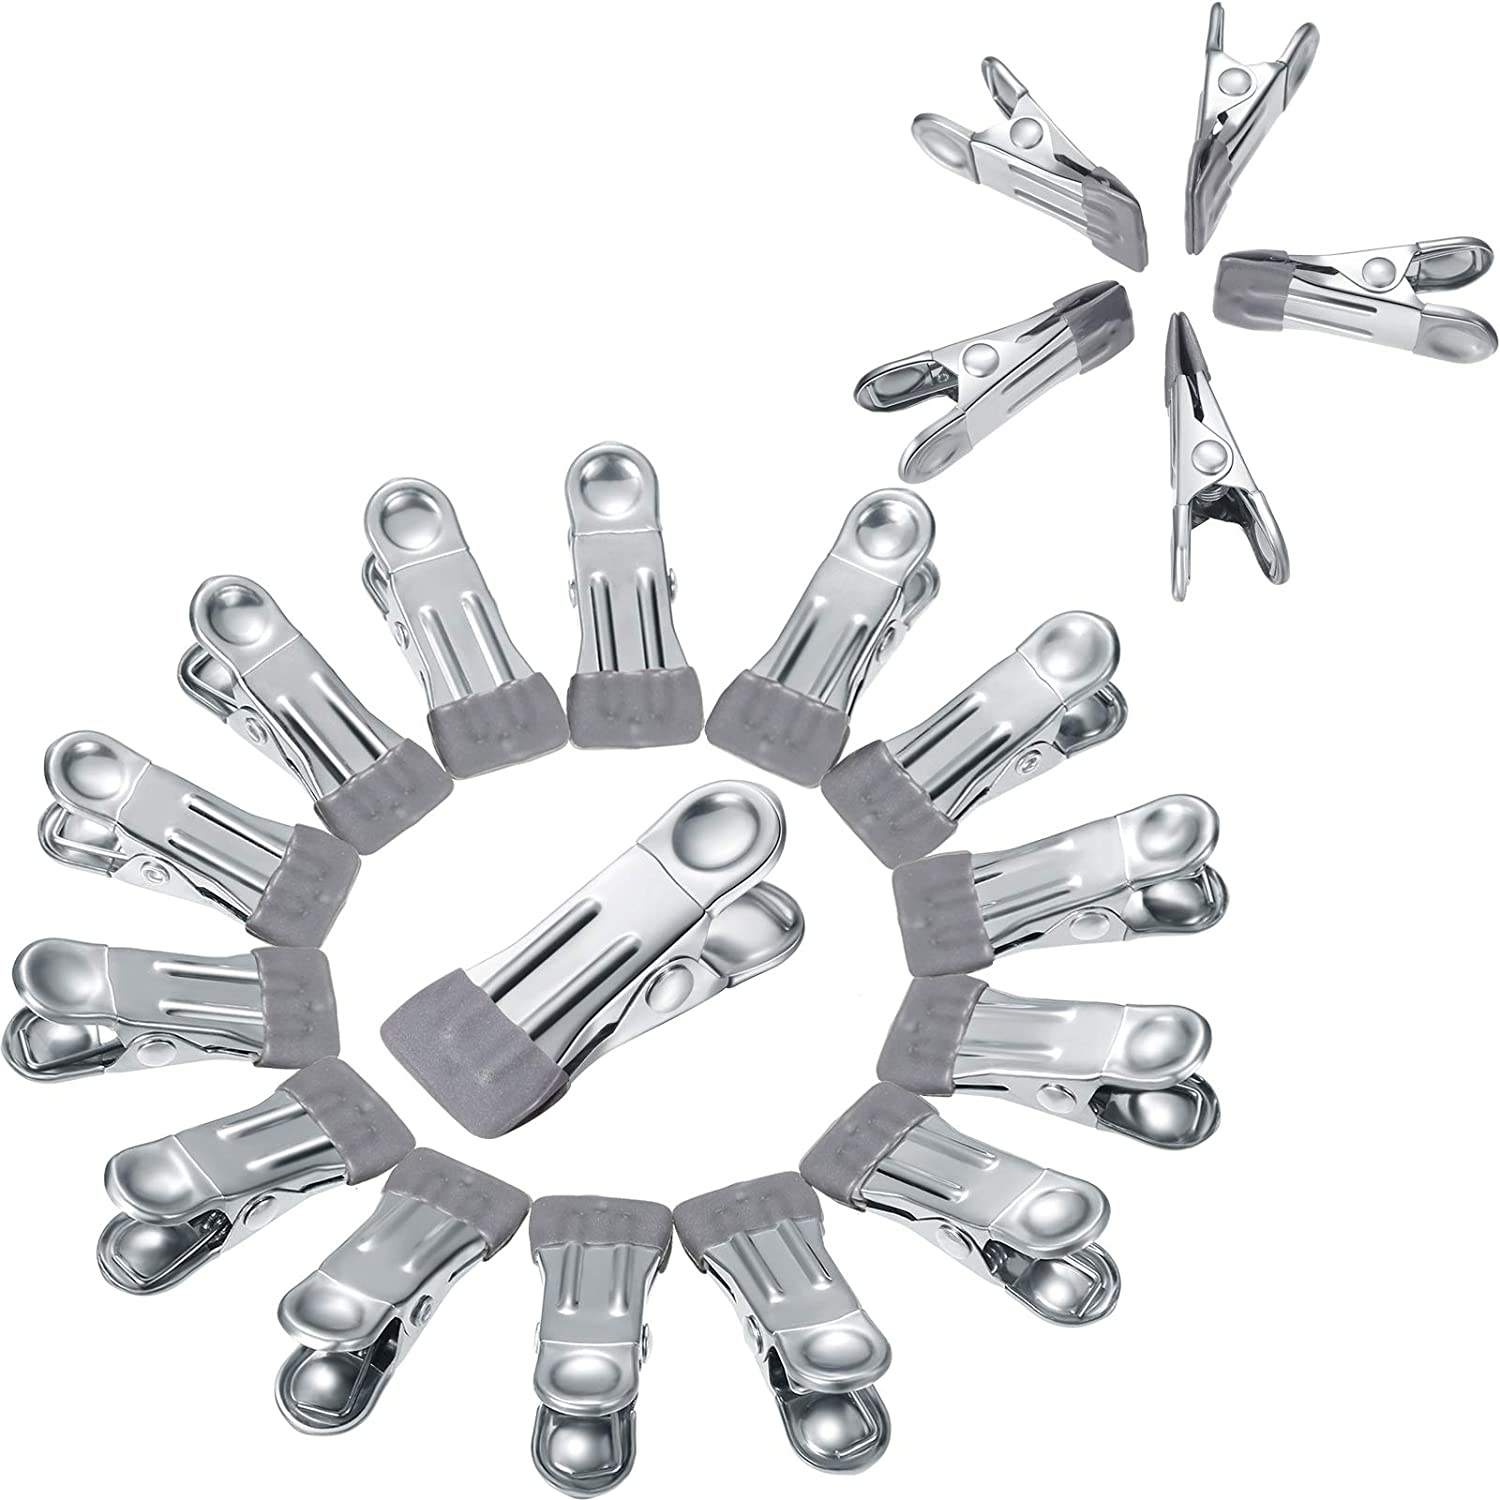 Patelai 20 PiecesSwimming Pool Cover Clips Stainless Steel Clothespins Multi Function Windproof Clothes Clip Metal Spring Clamps for Winter Swimming Pool Cover DryingClothes Food Sealing (Silver)